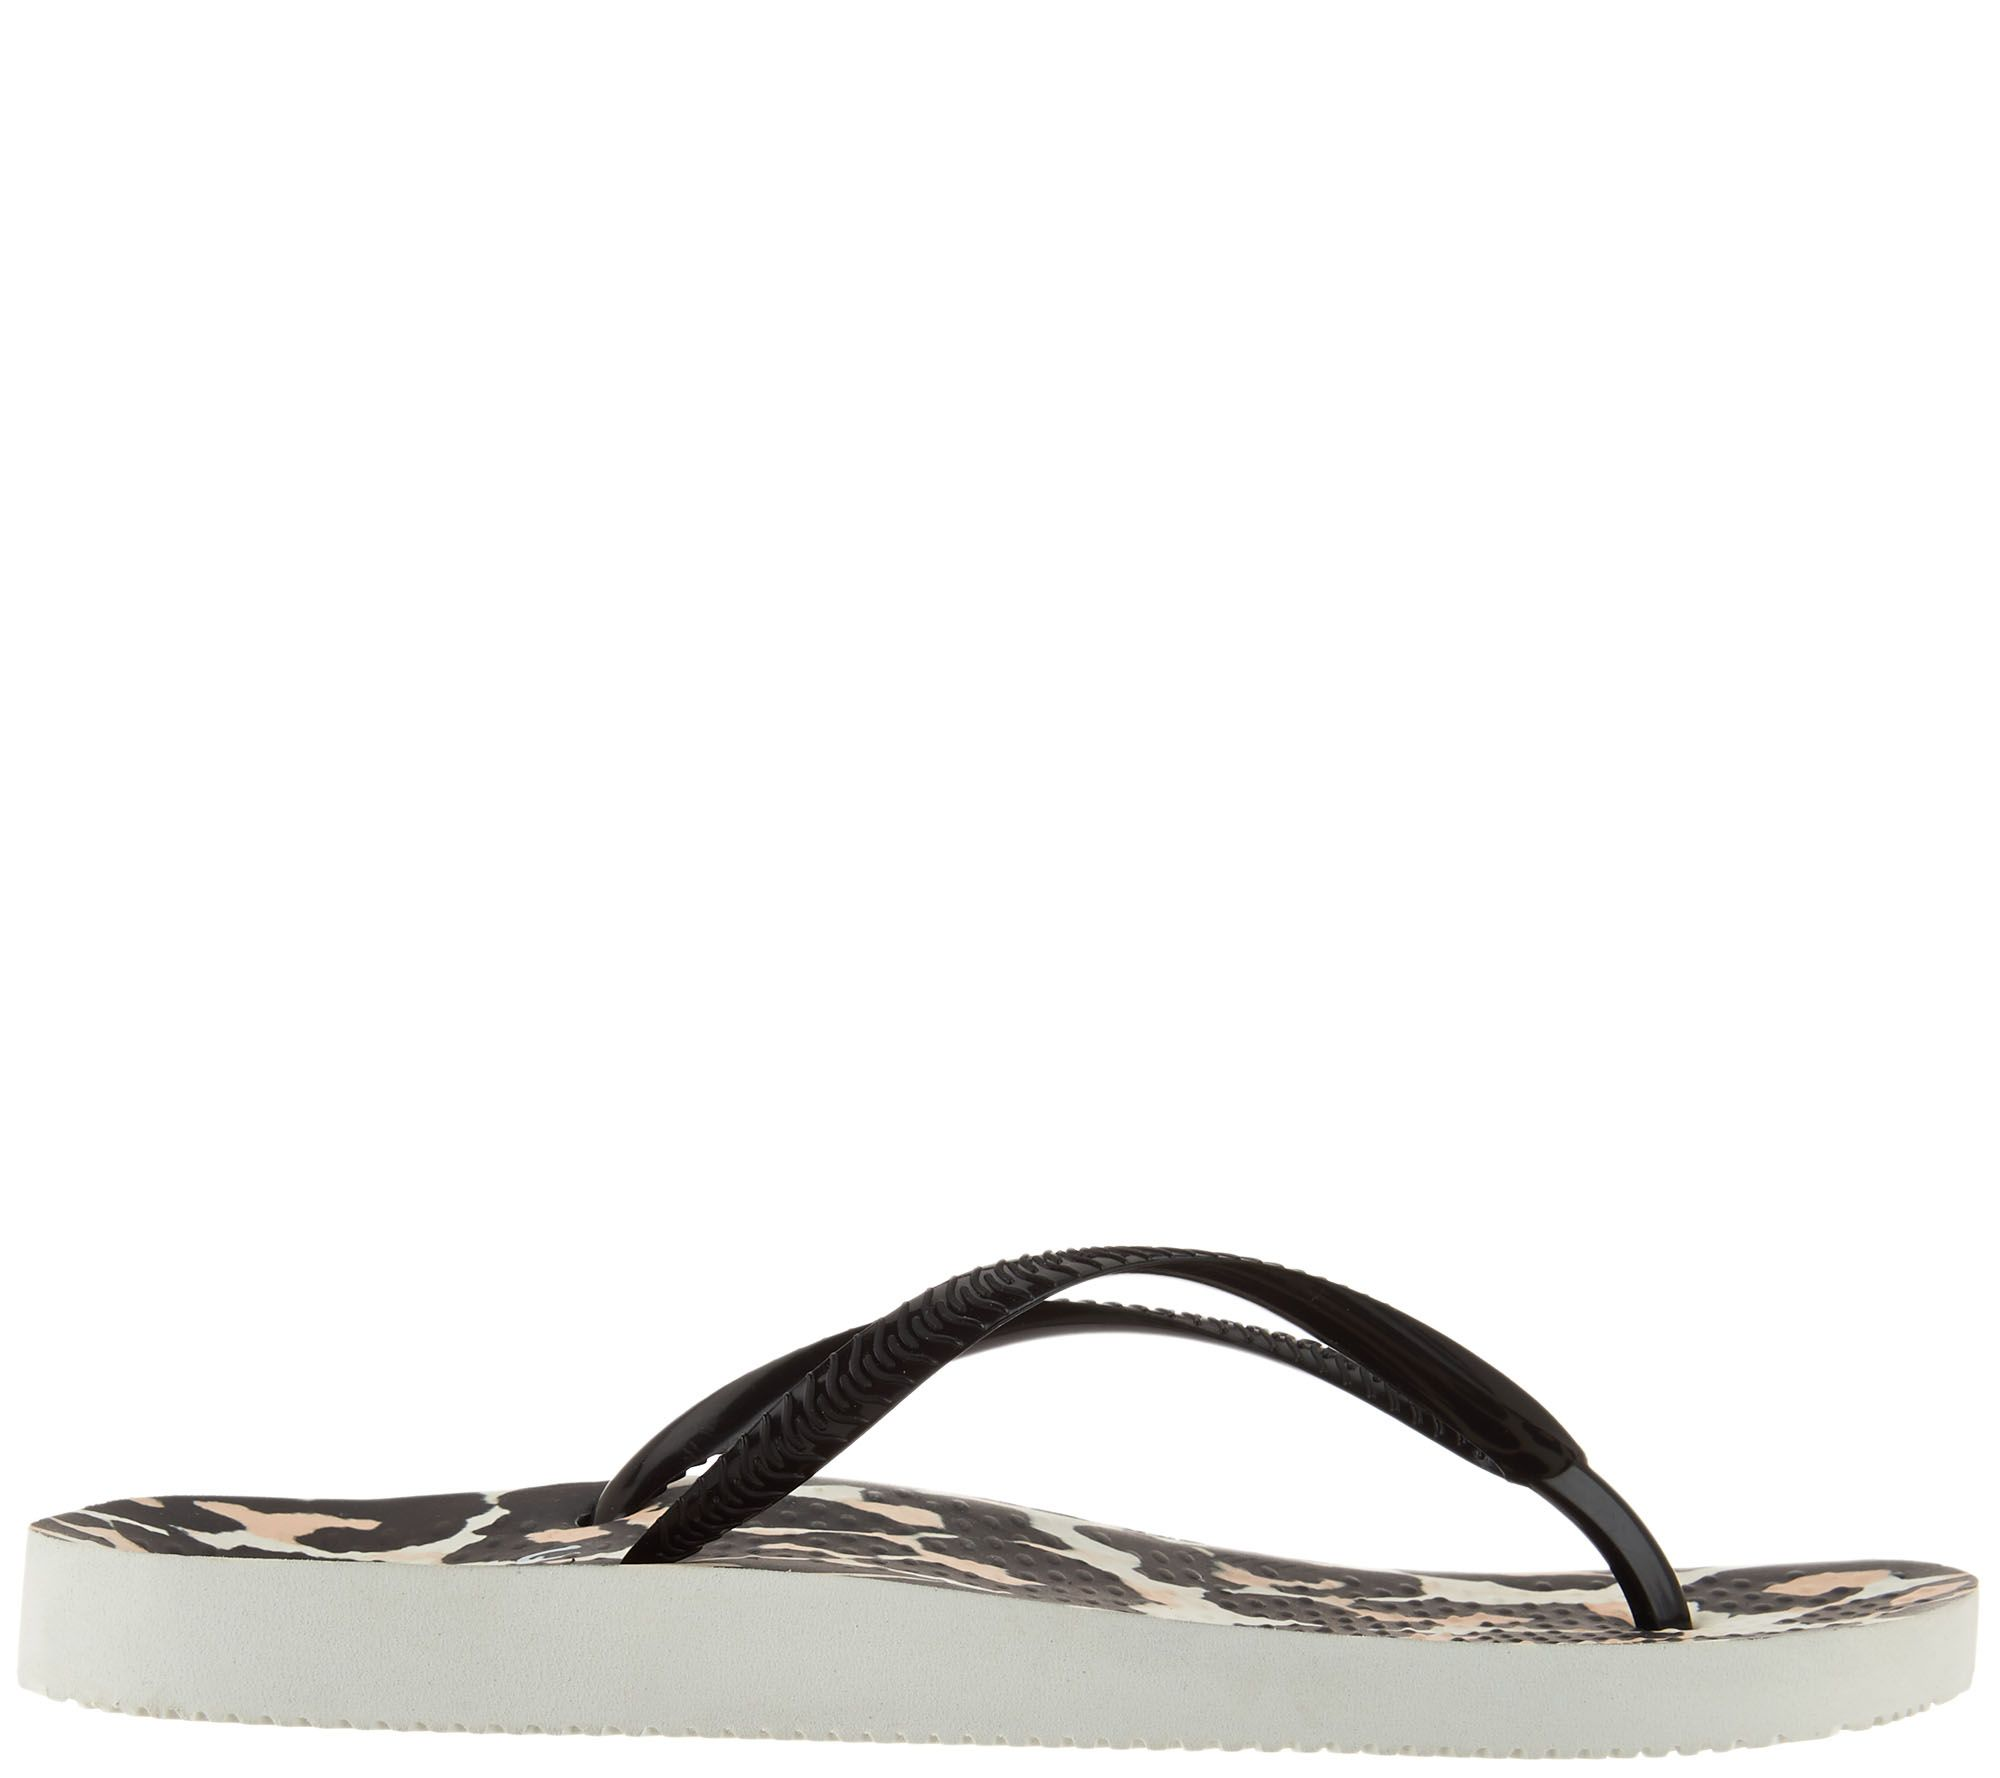 Vionic Orthotic Flip Flop Noosa Page 1 Flops And Not The Sandy Beach Kind Design Technology